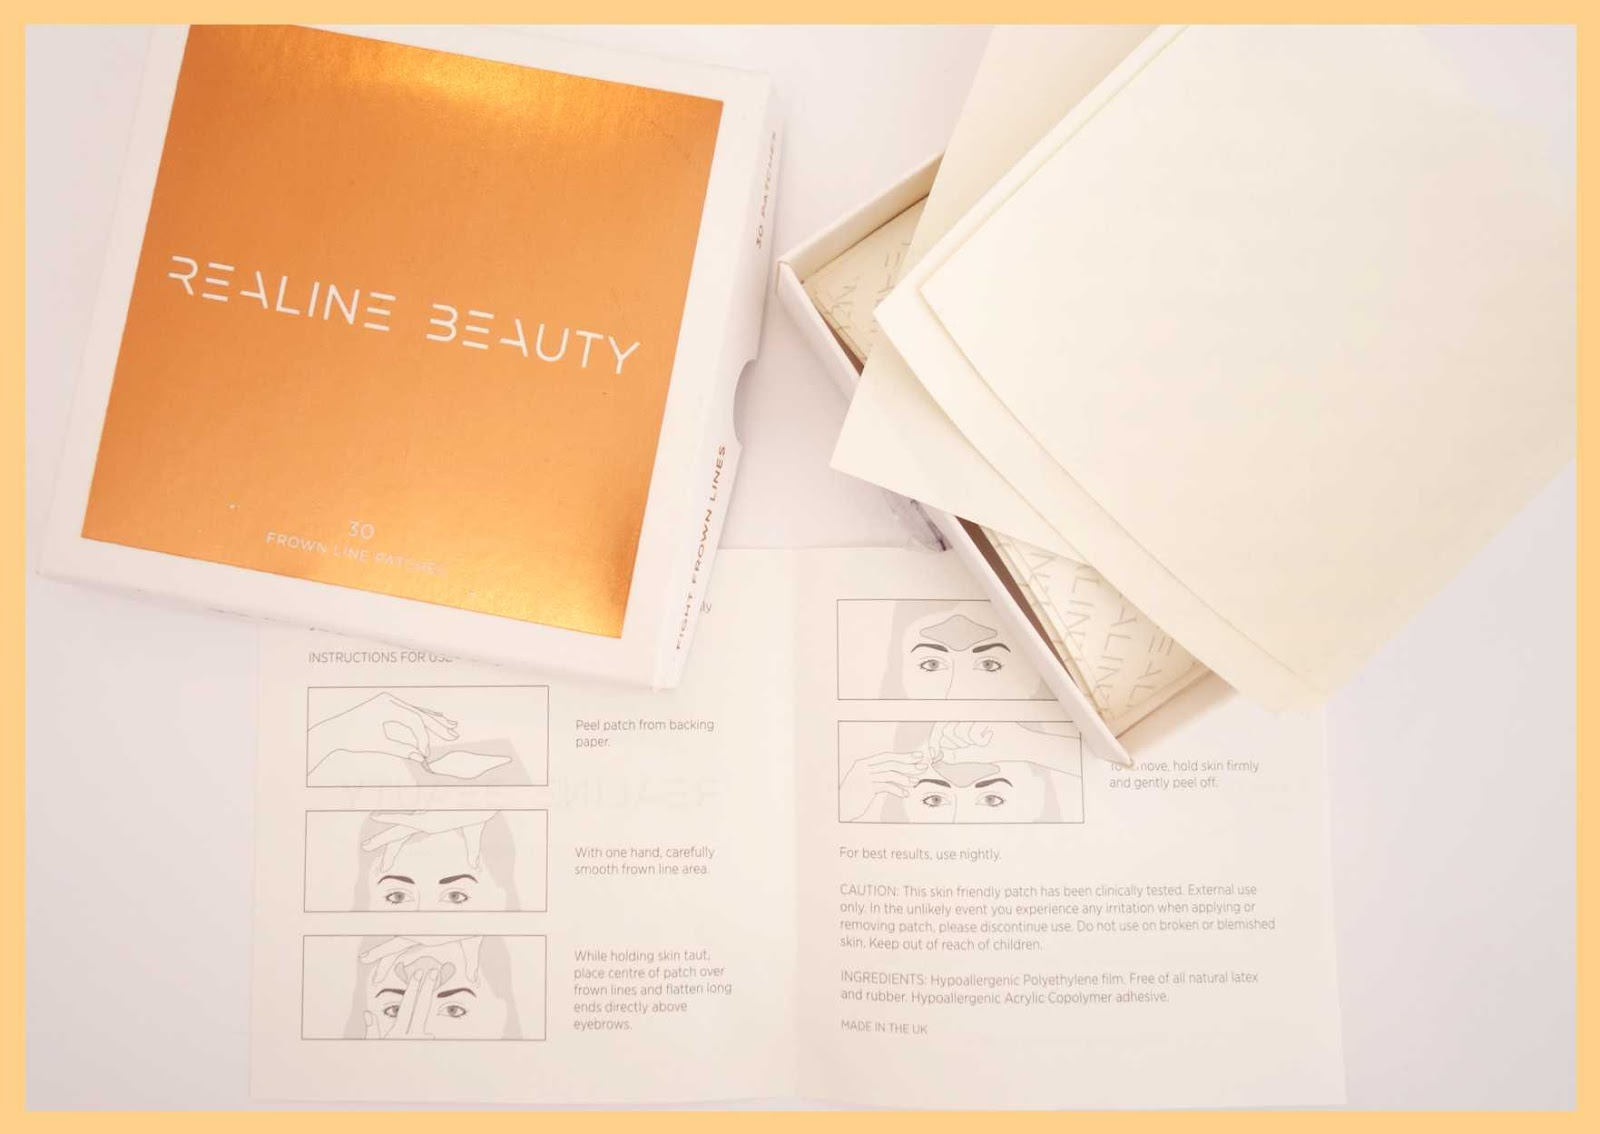 Realine-Beauty-Patches-Reviewed